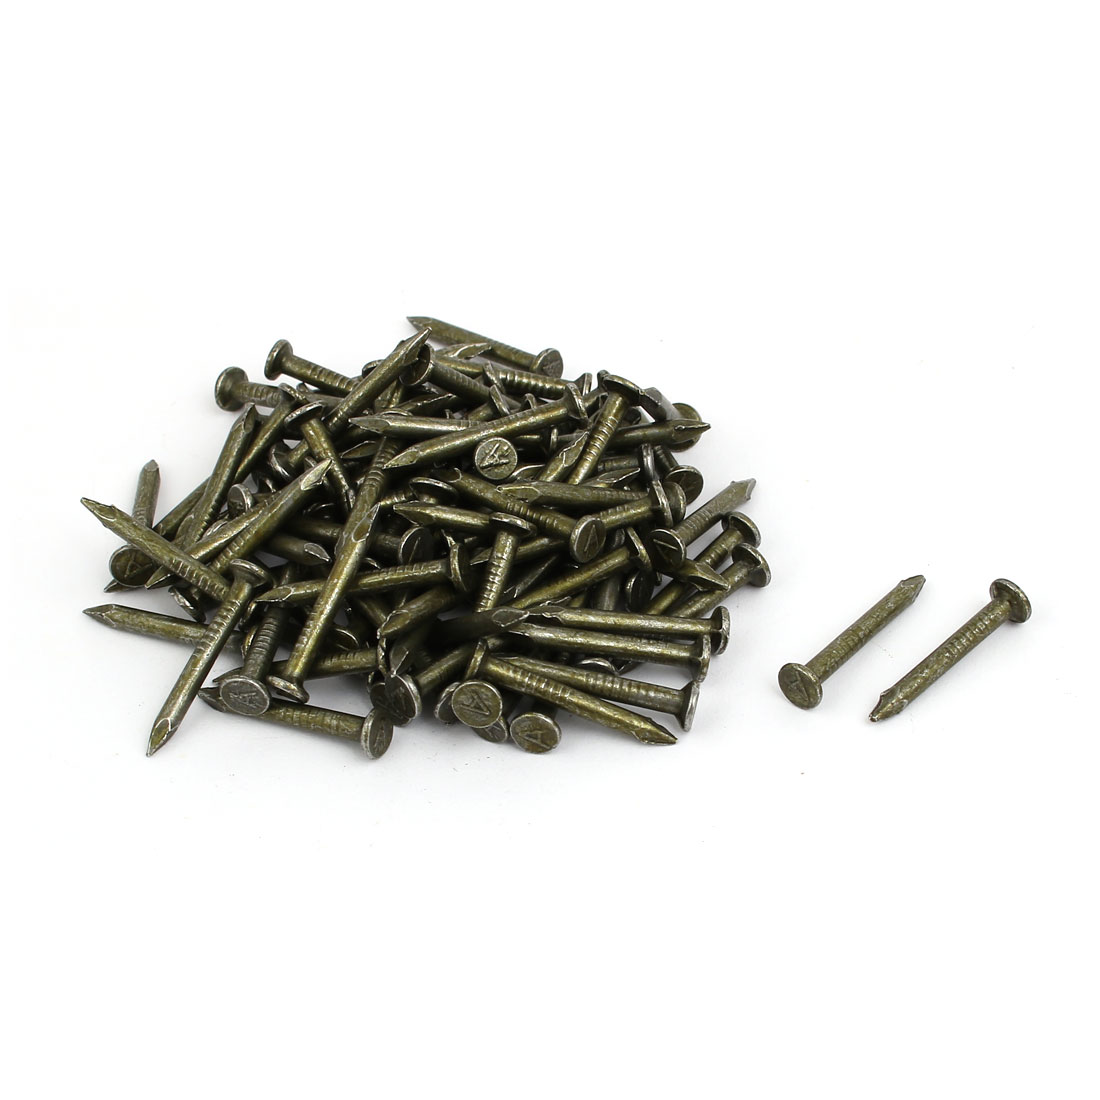 2.8mm x 25mm Carbon Steel Round Head Siding Wall Cement Nail 100pcs